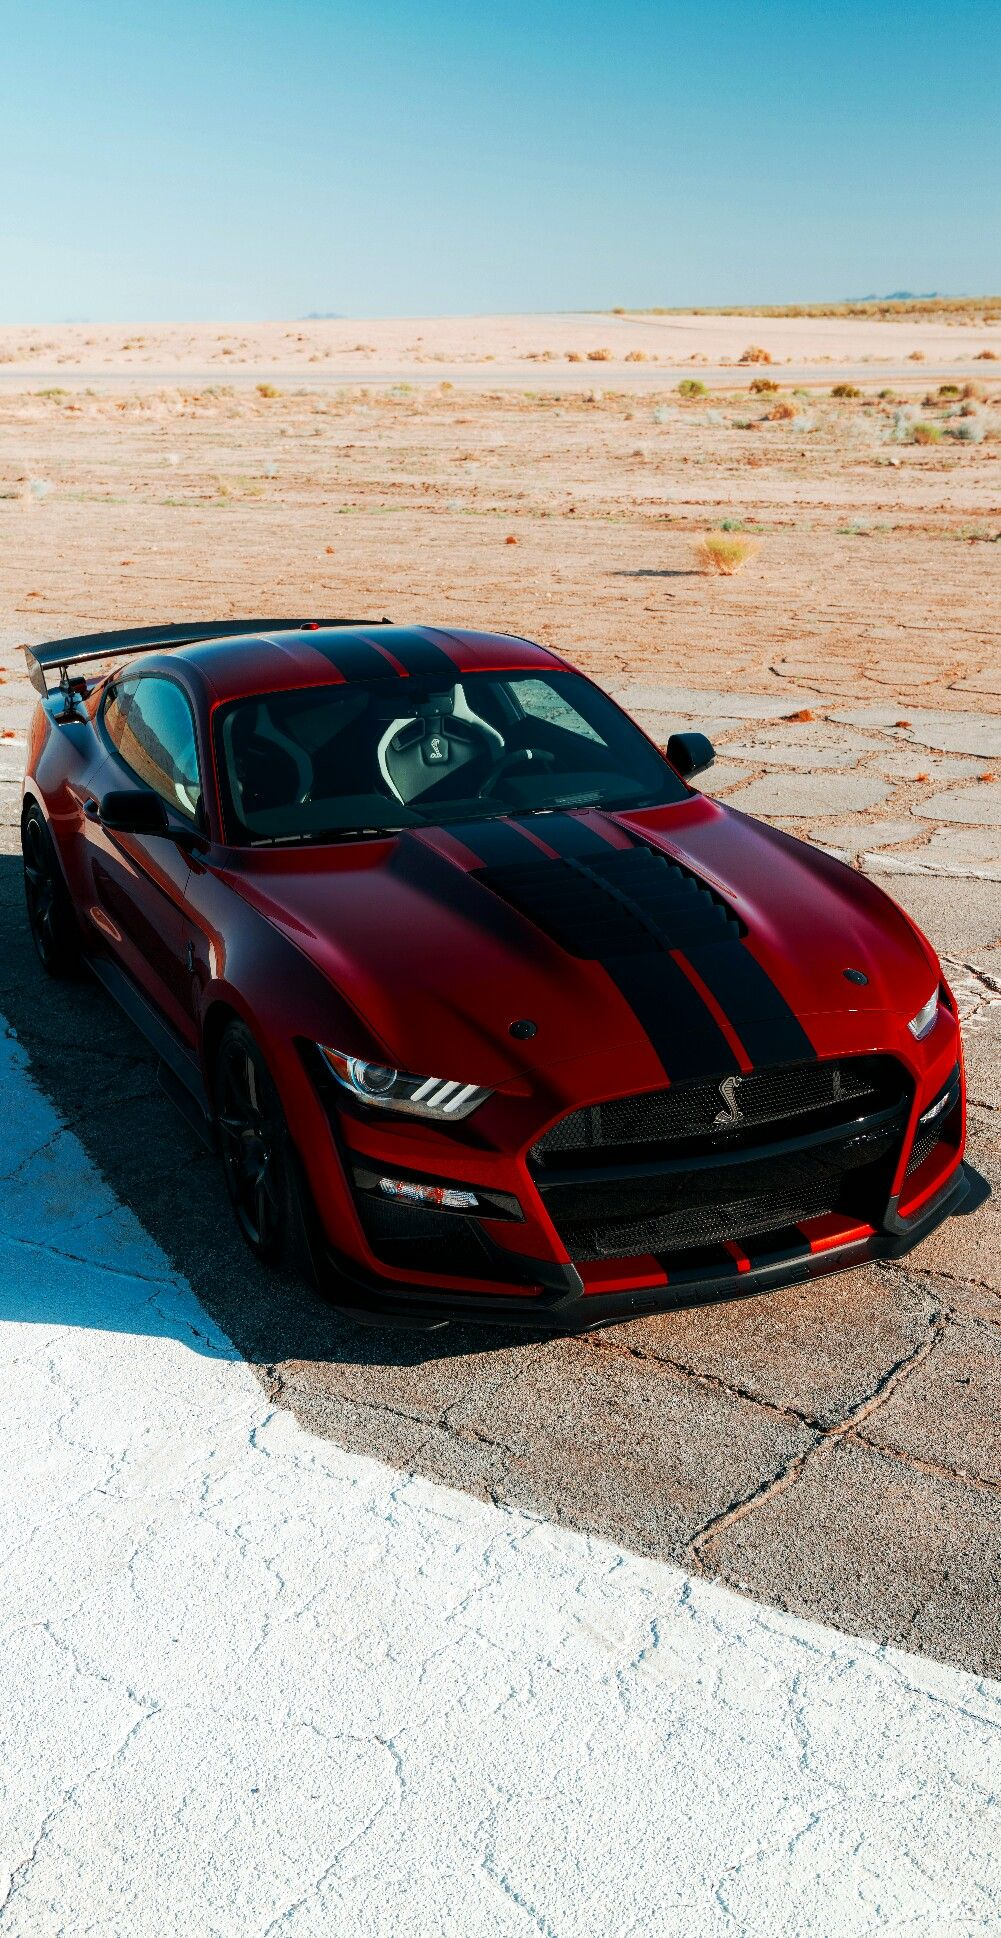 2020 Ford Mustang Shelby Gt500 Enhanced By Keely Vonmonski Ford Mustang Shelby Gt500 Ford Mustang Shelby Mustang Shelby